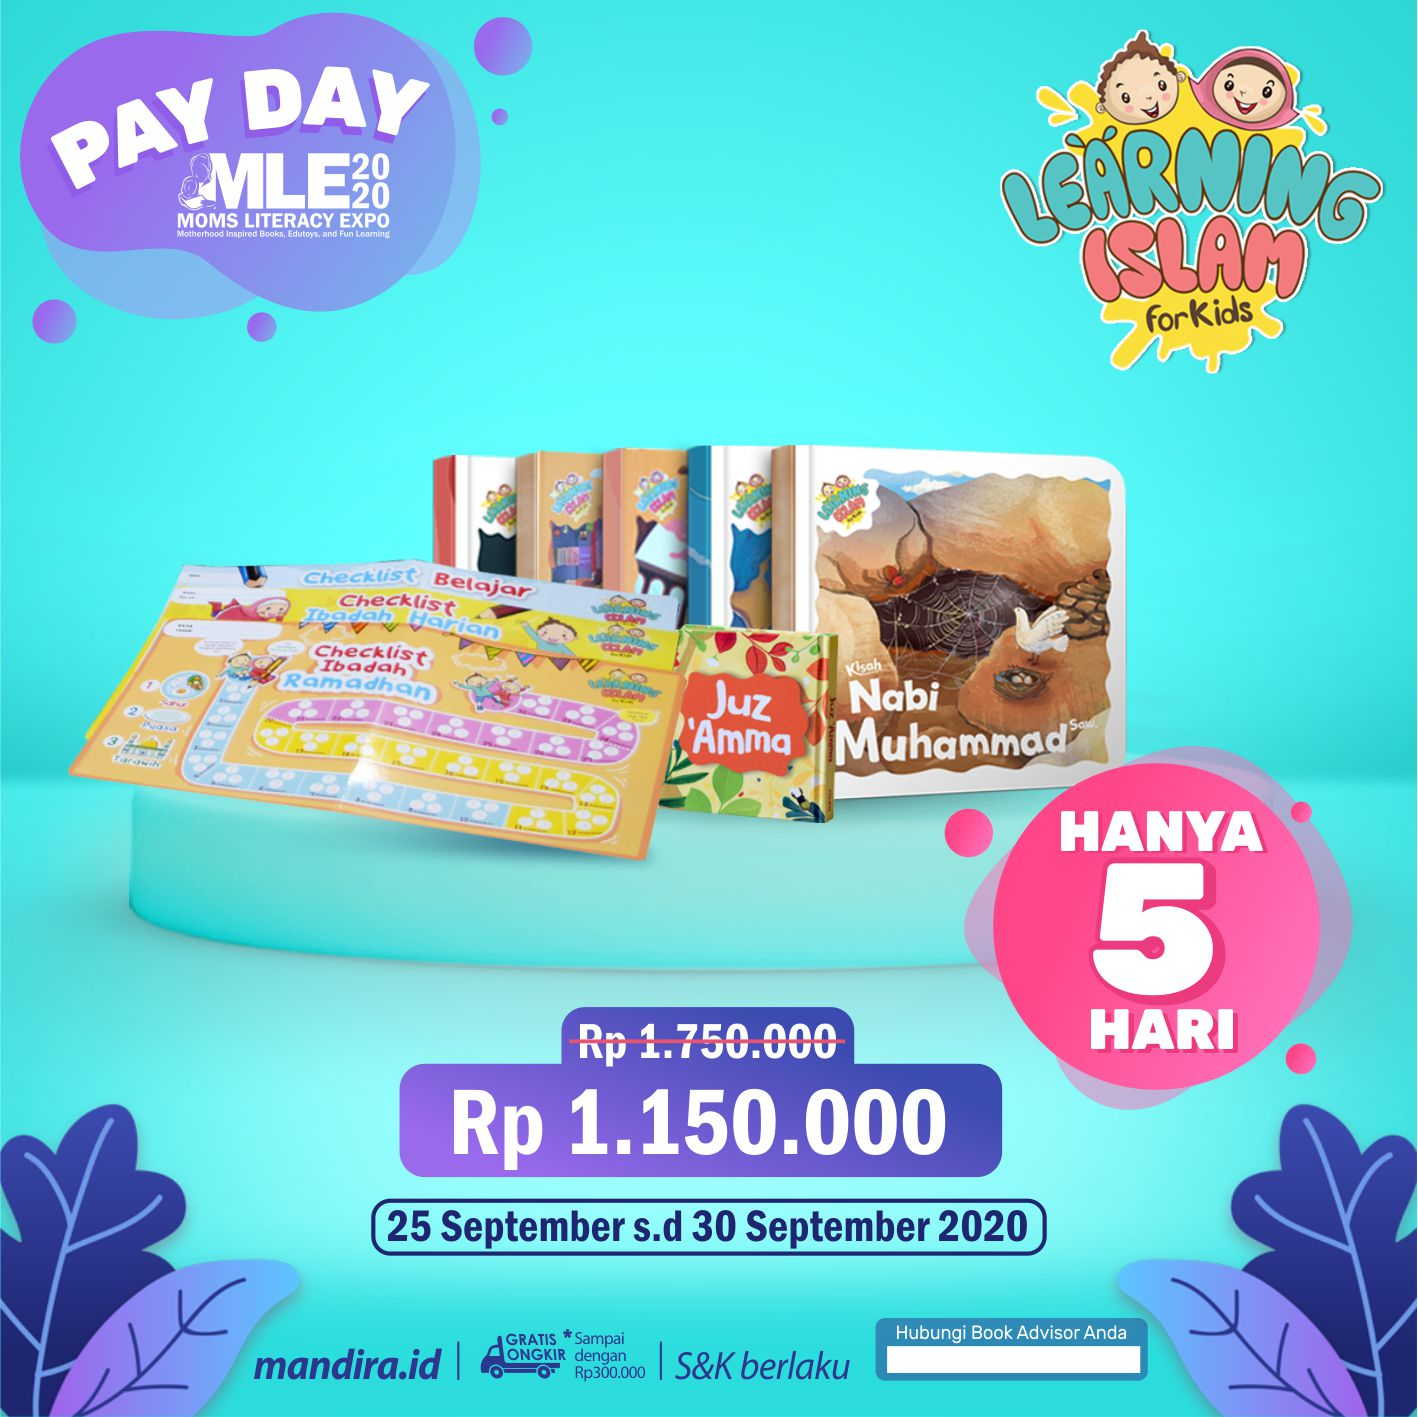 LIFKIDS PAYDAY MLE SEPT 2020